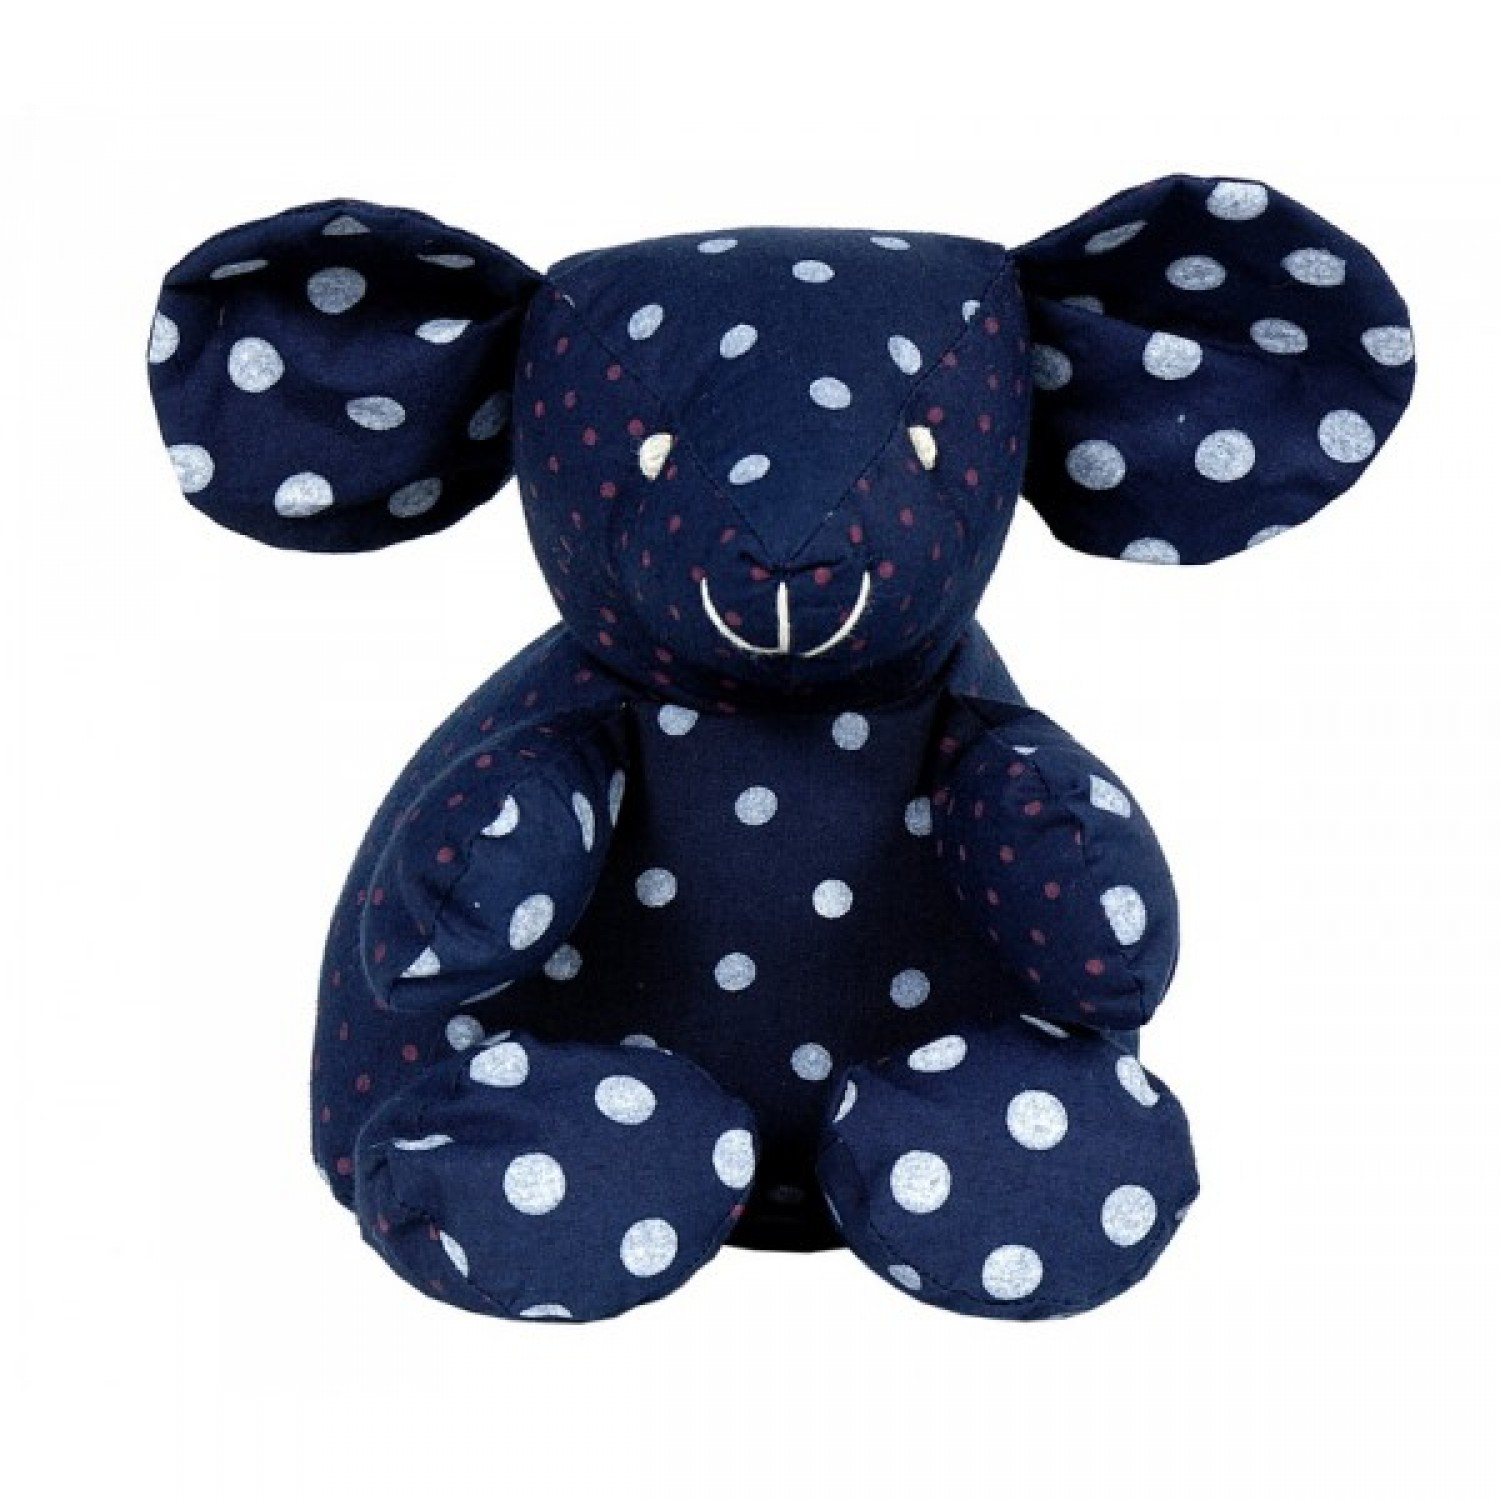 Stuffed toy | Veronique the mouse | organic cotton